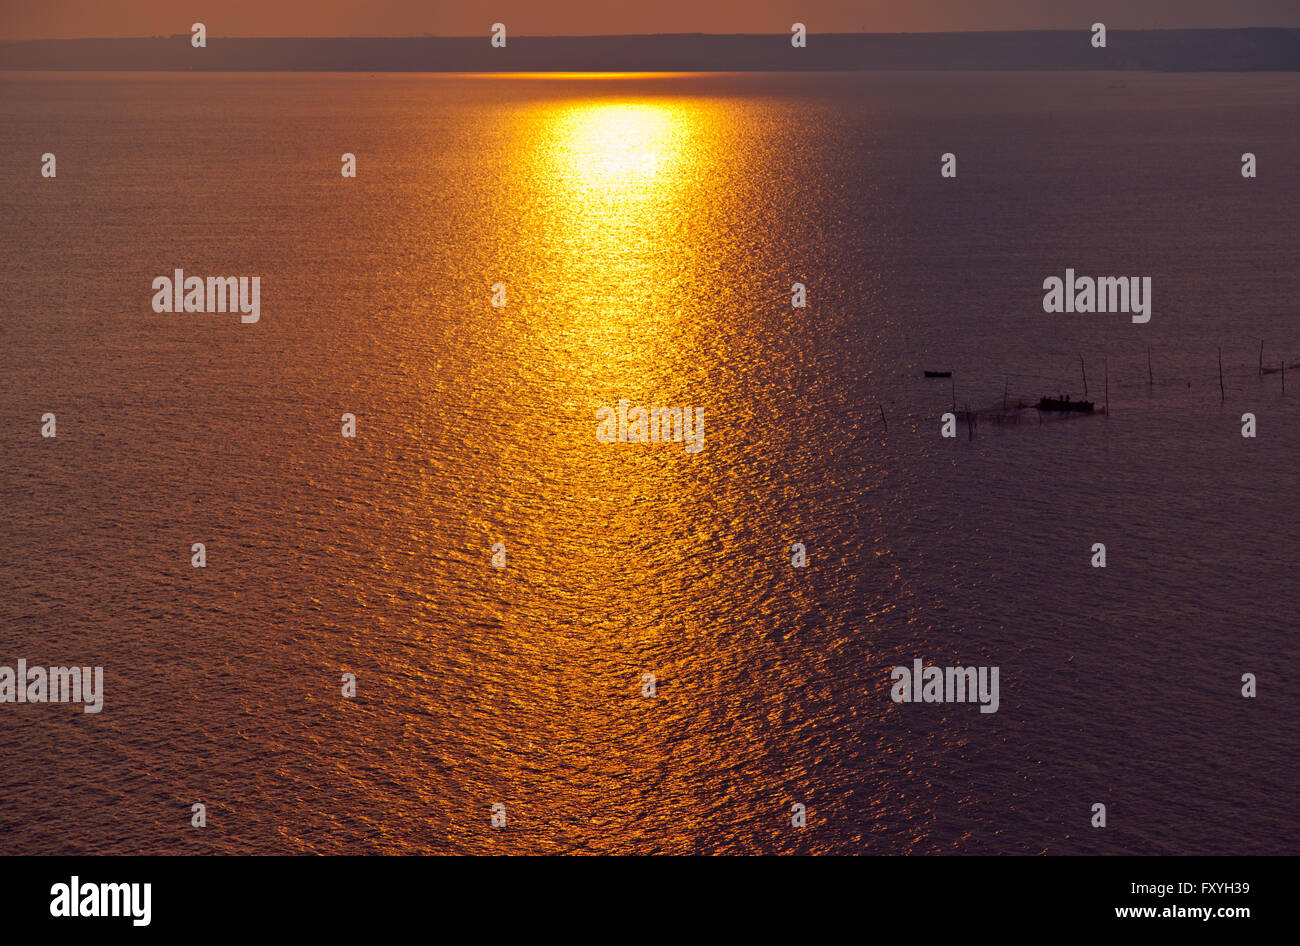 yewoll sunset or sunrise over a wide body of water - ocean , sea or lake. - Stock Image